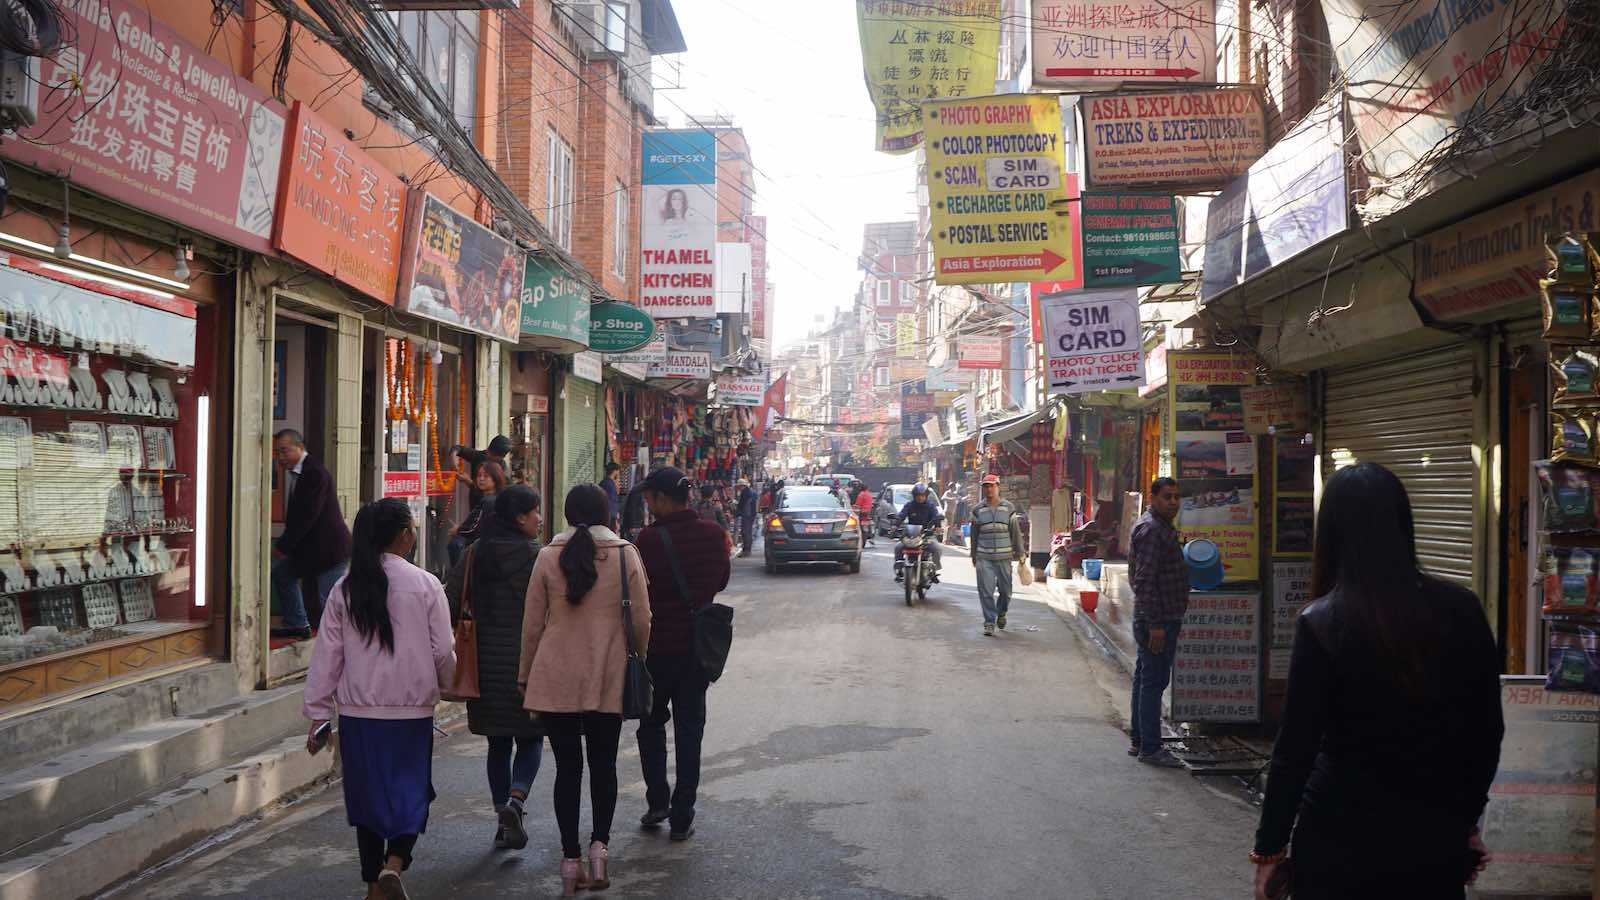 I stayed in Thamel which is the part of Kathmandu where all the lodging/hotels are and is considered the 'touristy' part. It was cleaner and more organized than the other parts of Kathmandu I saw later.